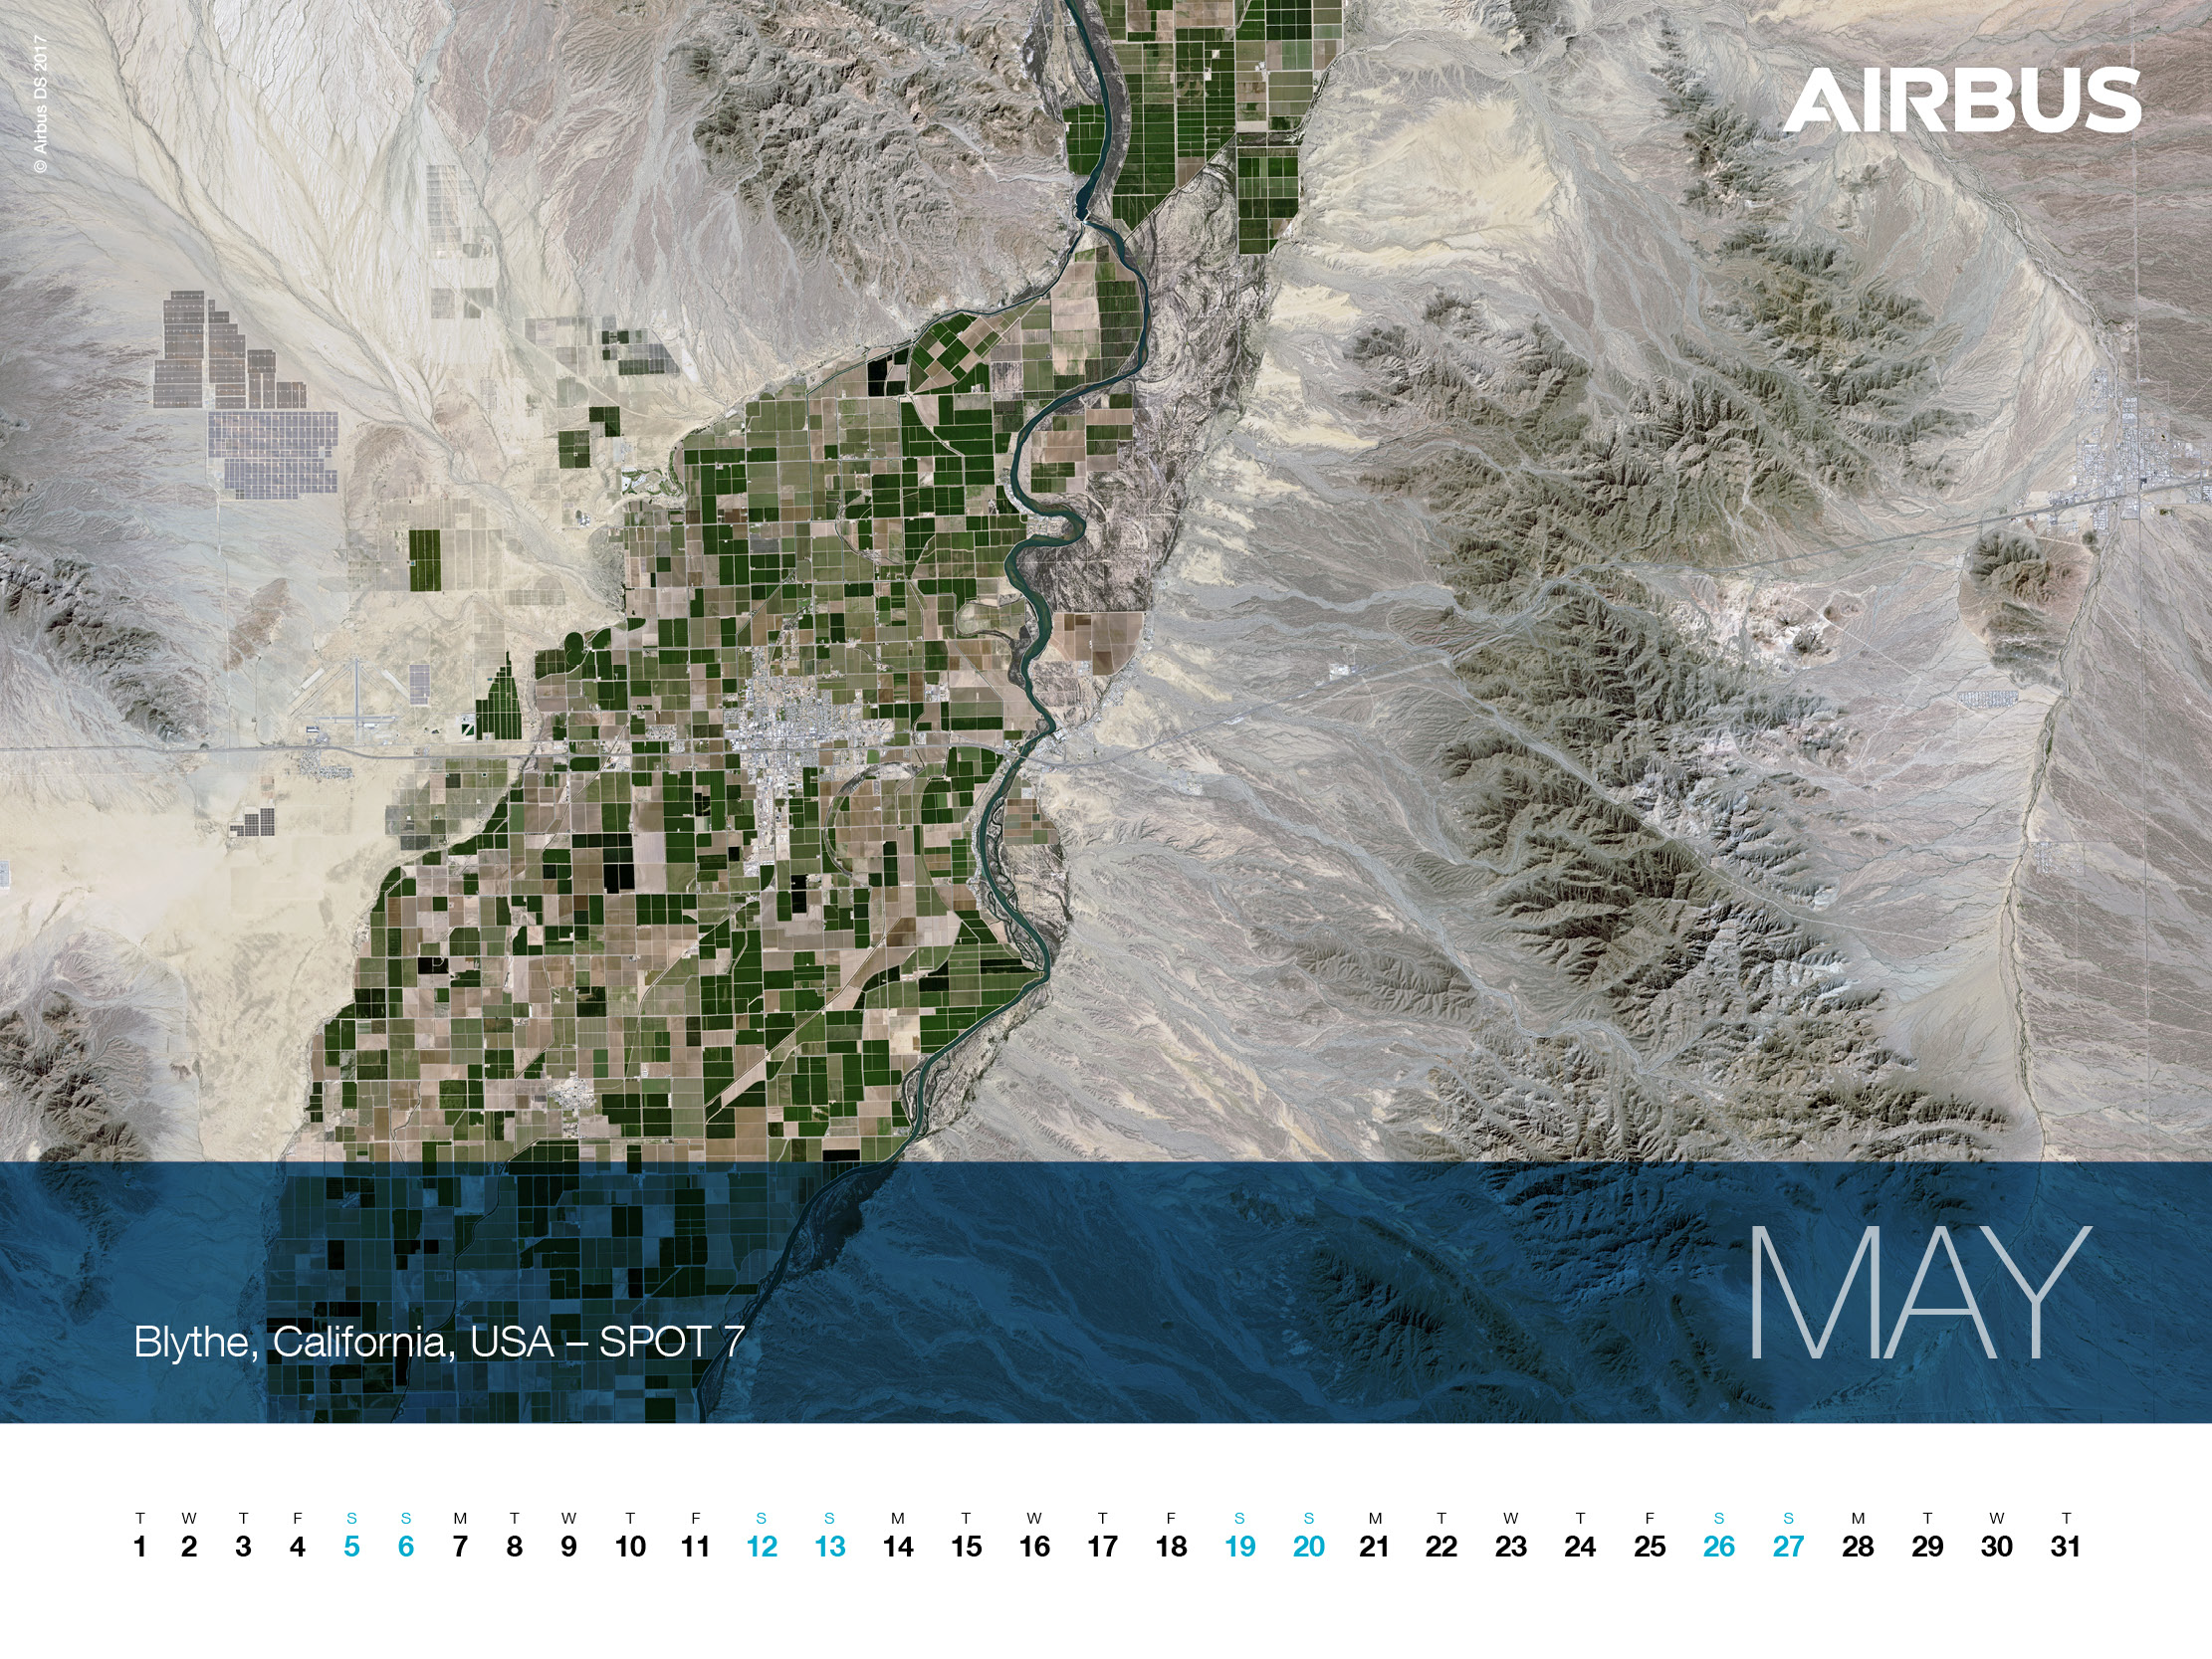 Calendar 2018 - May - SPOT 7 Satellite Image, Blythe, California, USA - 1600x1200